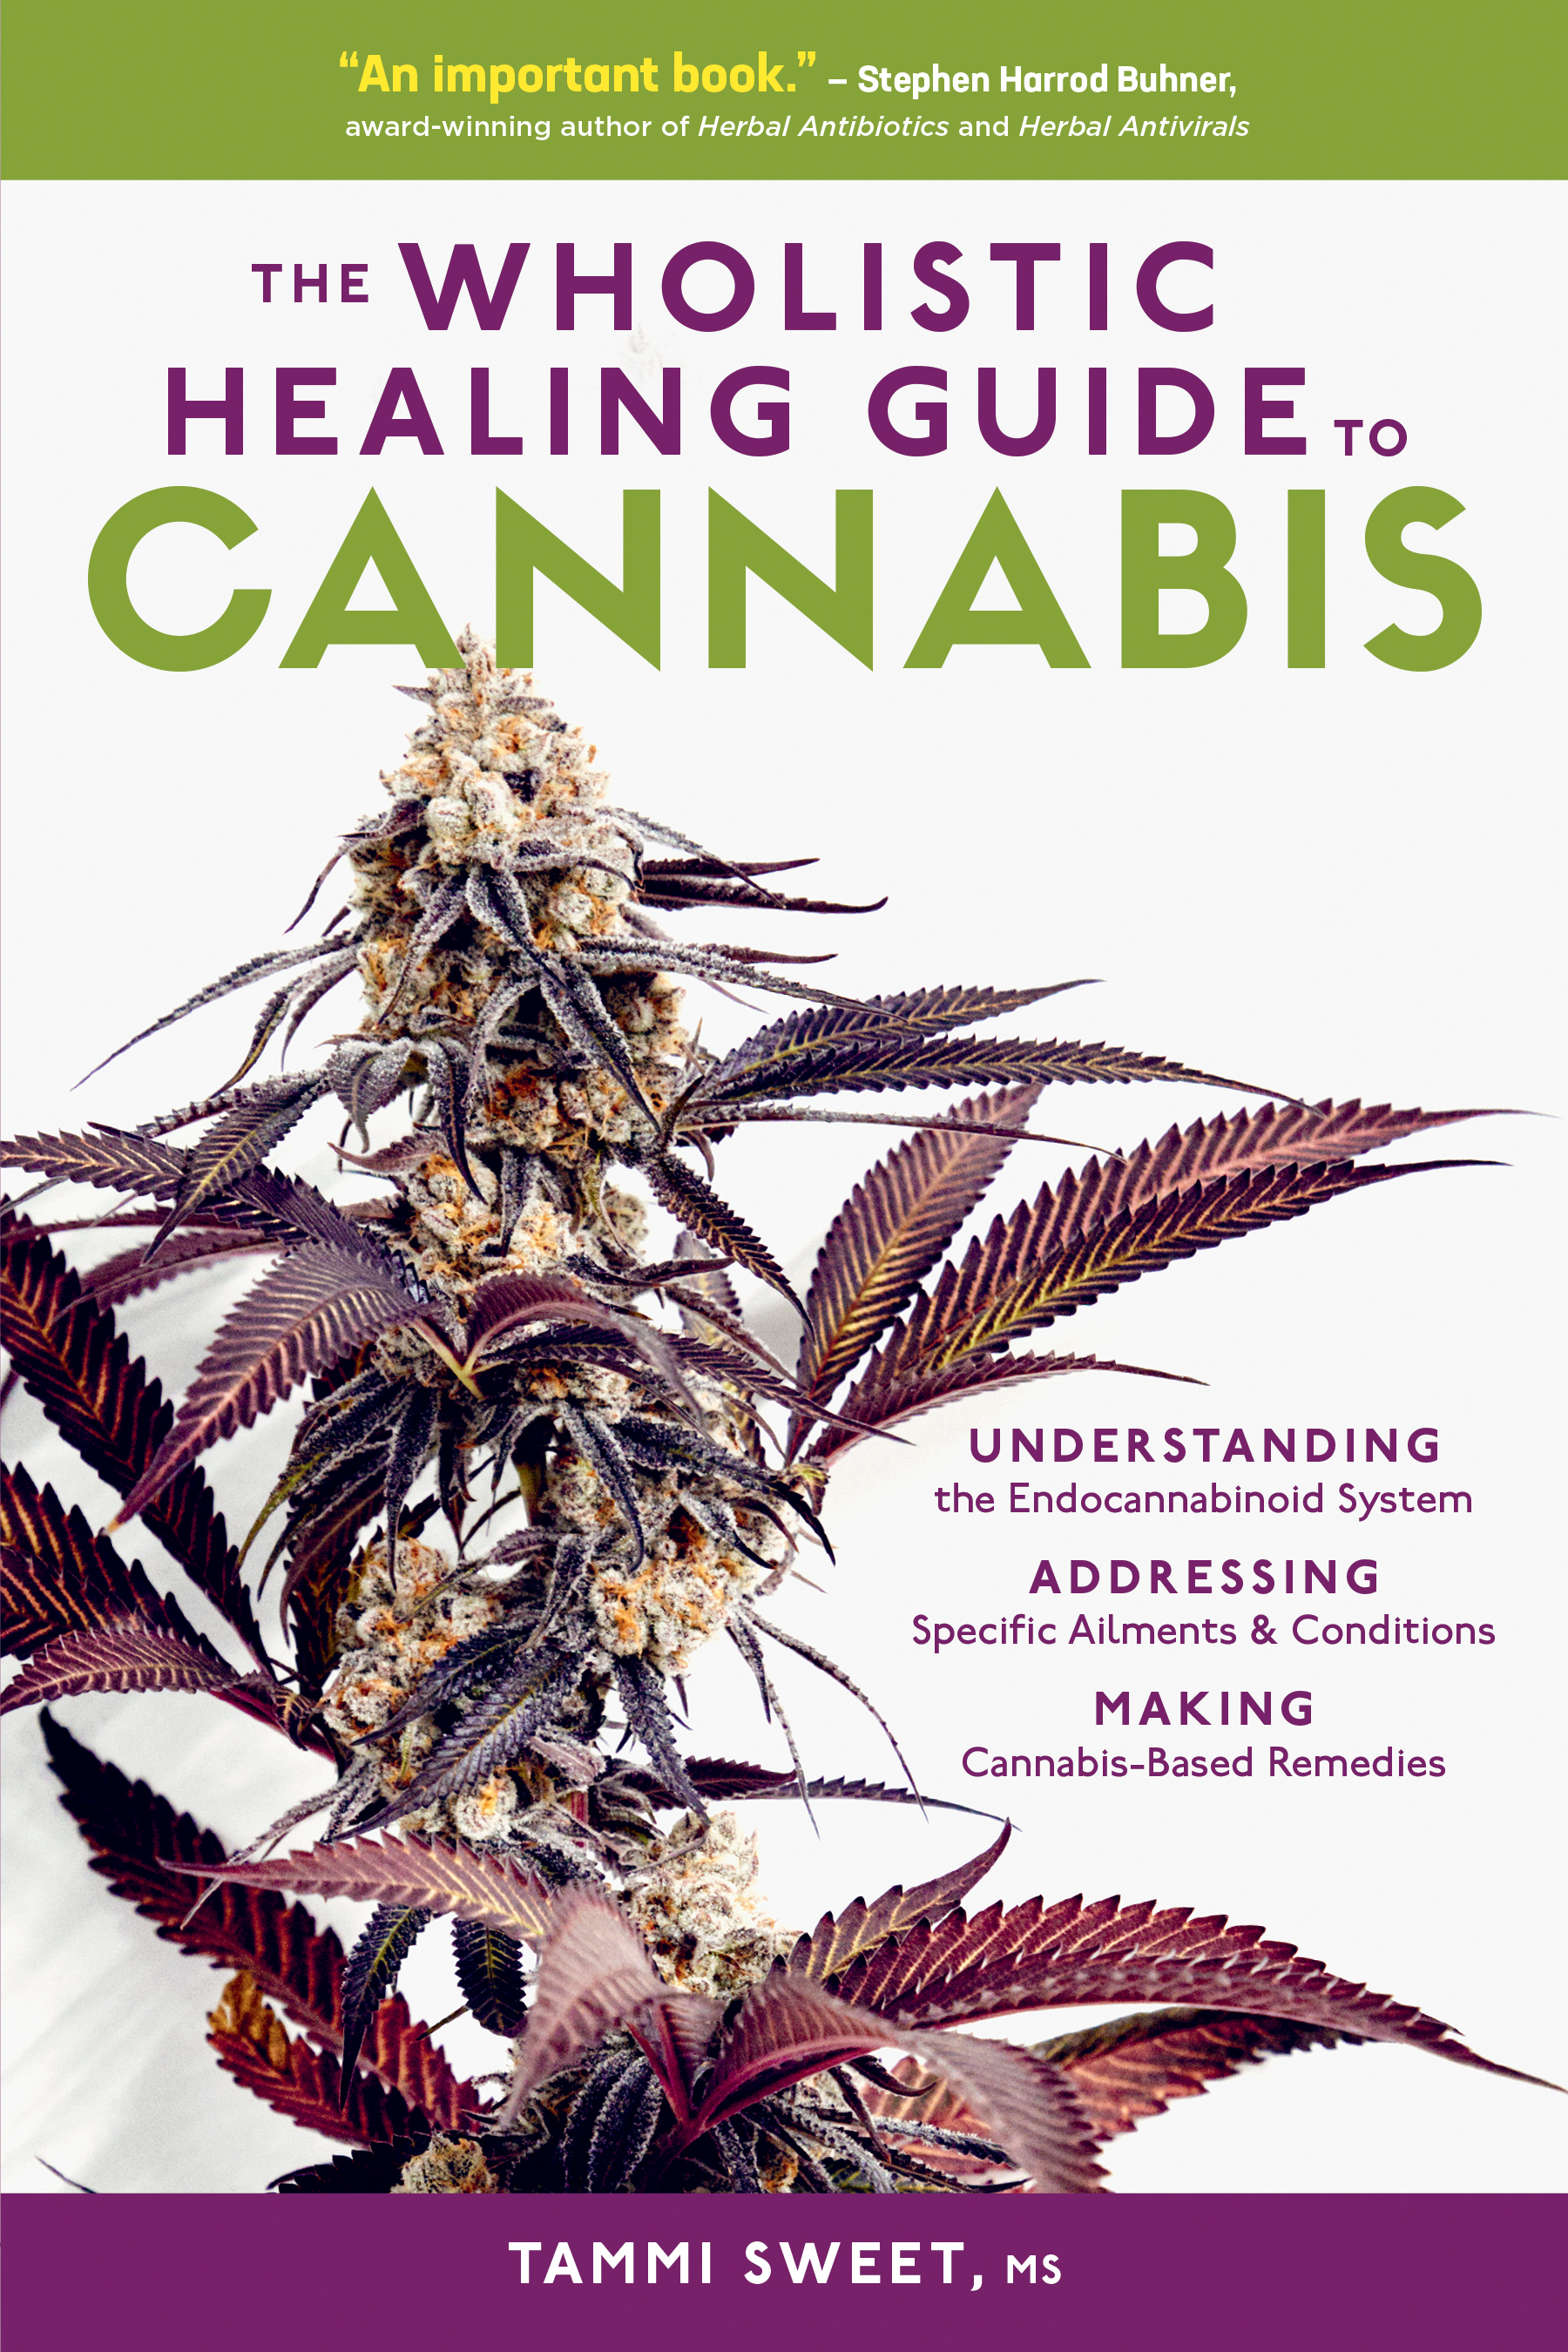 The Wholistic Healing Guide to Cannabis Understanding the Endocannabinoid System, Addressing Specifc Ailments and Conditions, and Making Cannabis-Based Remedies - Tammi Sweet